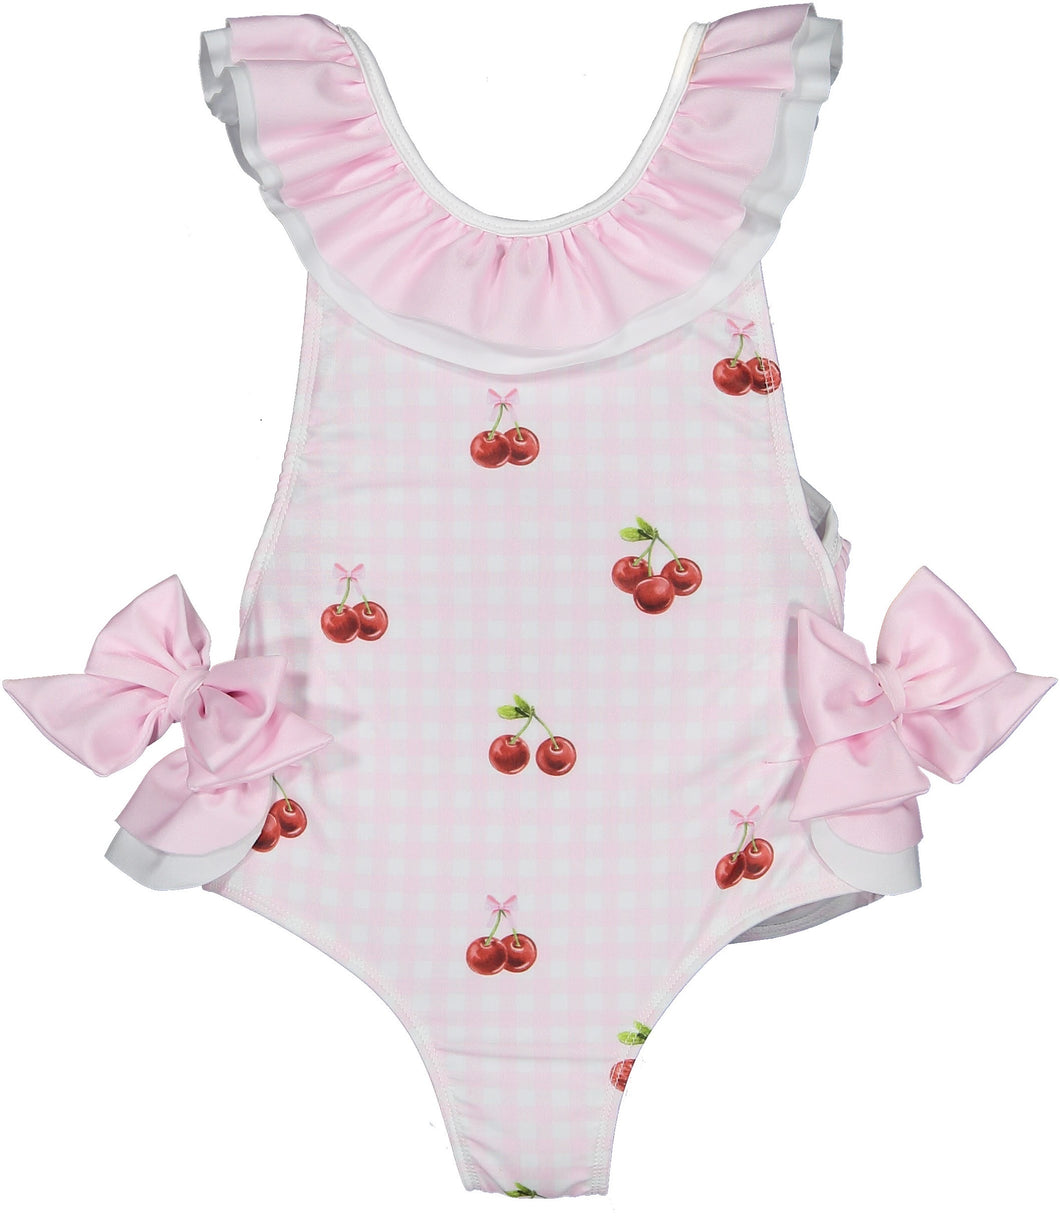 Cherry On Top Swimsuit (12m, 18m)